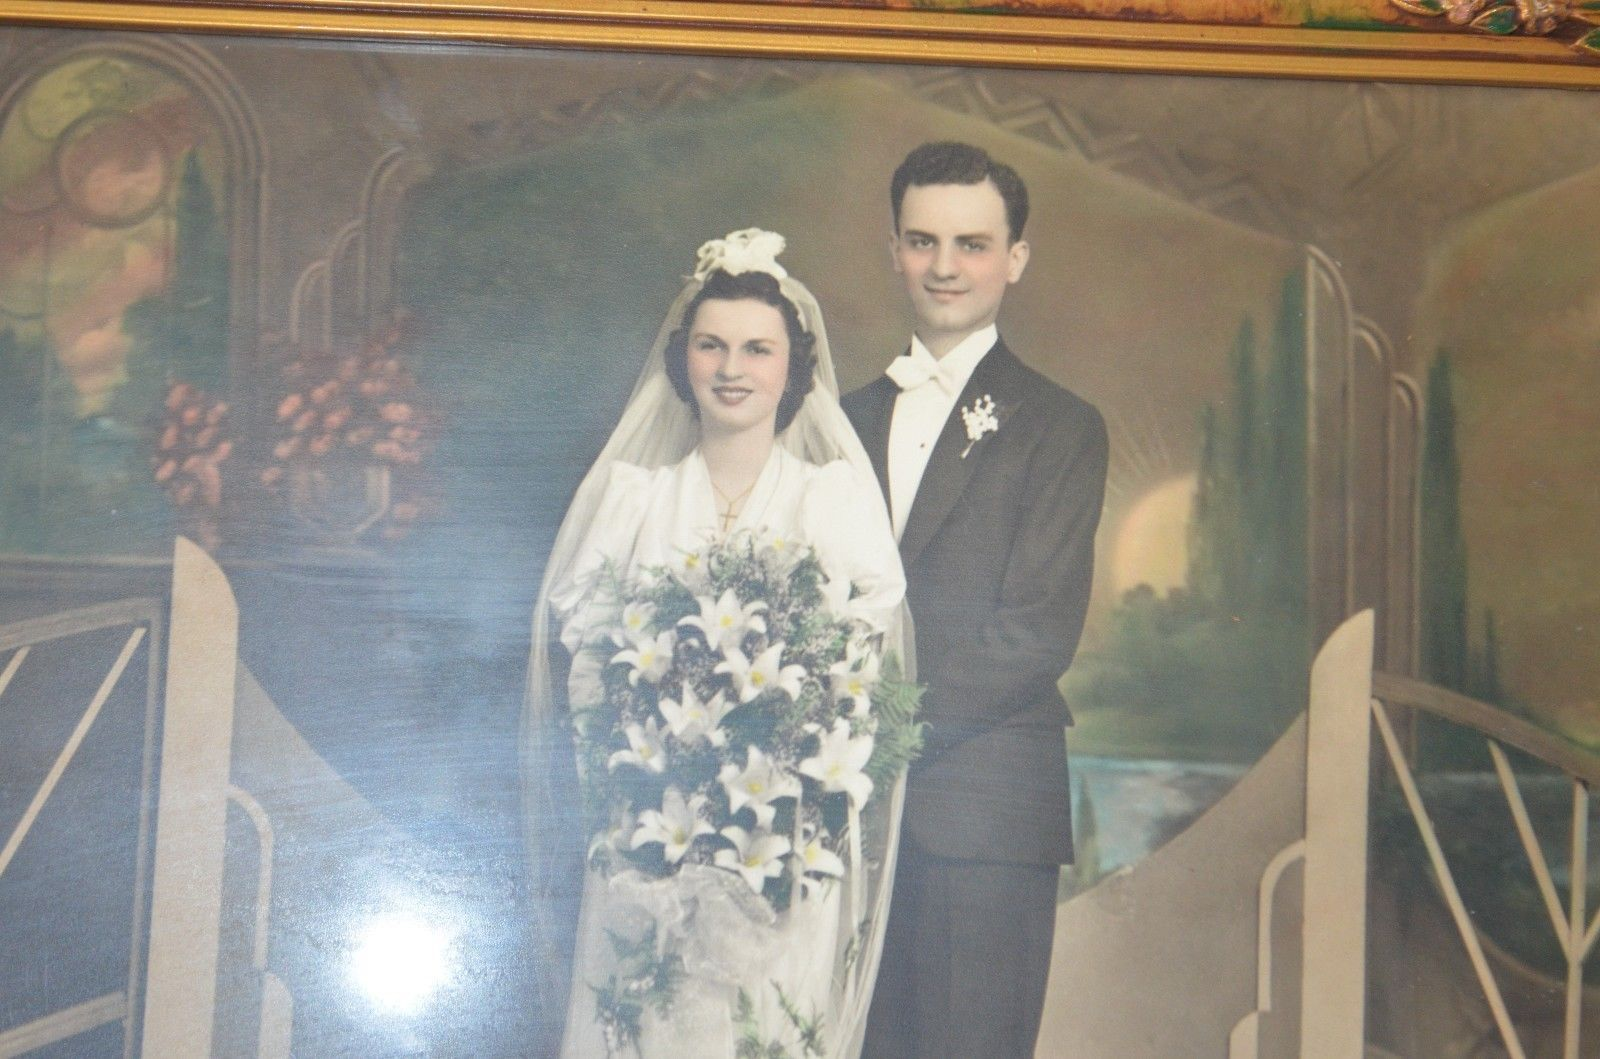 Beautiful stately Old fashioned WEDDING picture, in antique frame Photo w glass